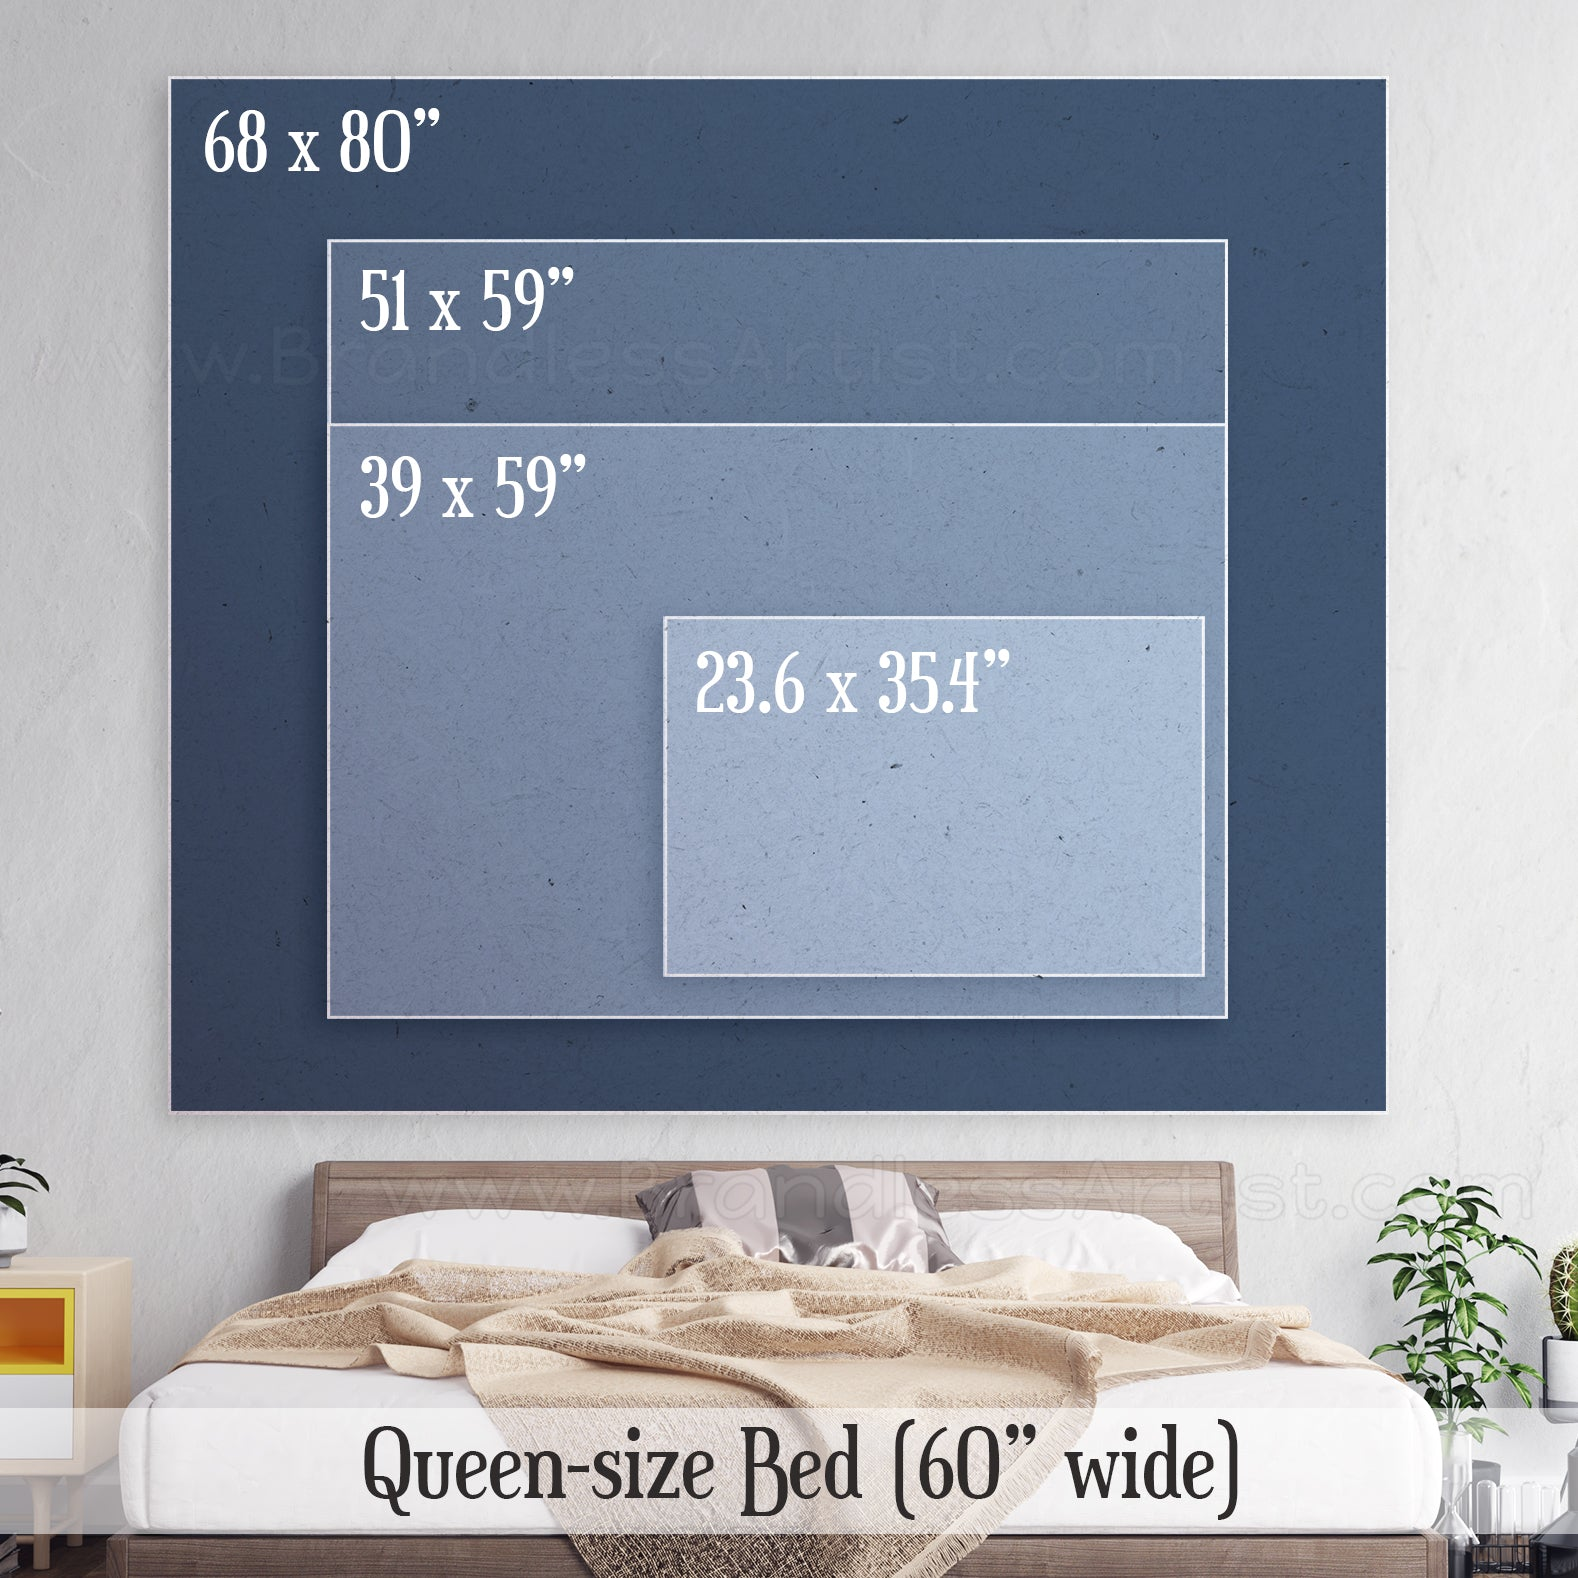 Scenic Wall Hanging Cheap Home Decor Size Chart | Brandless Artist